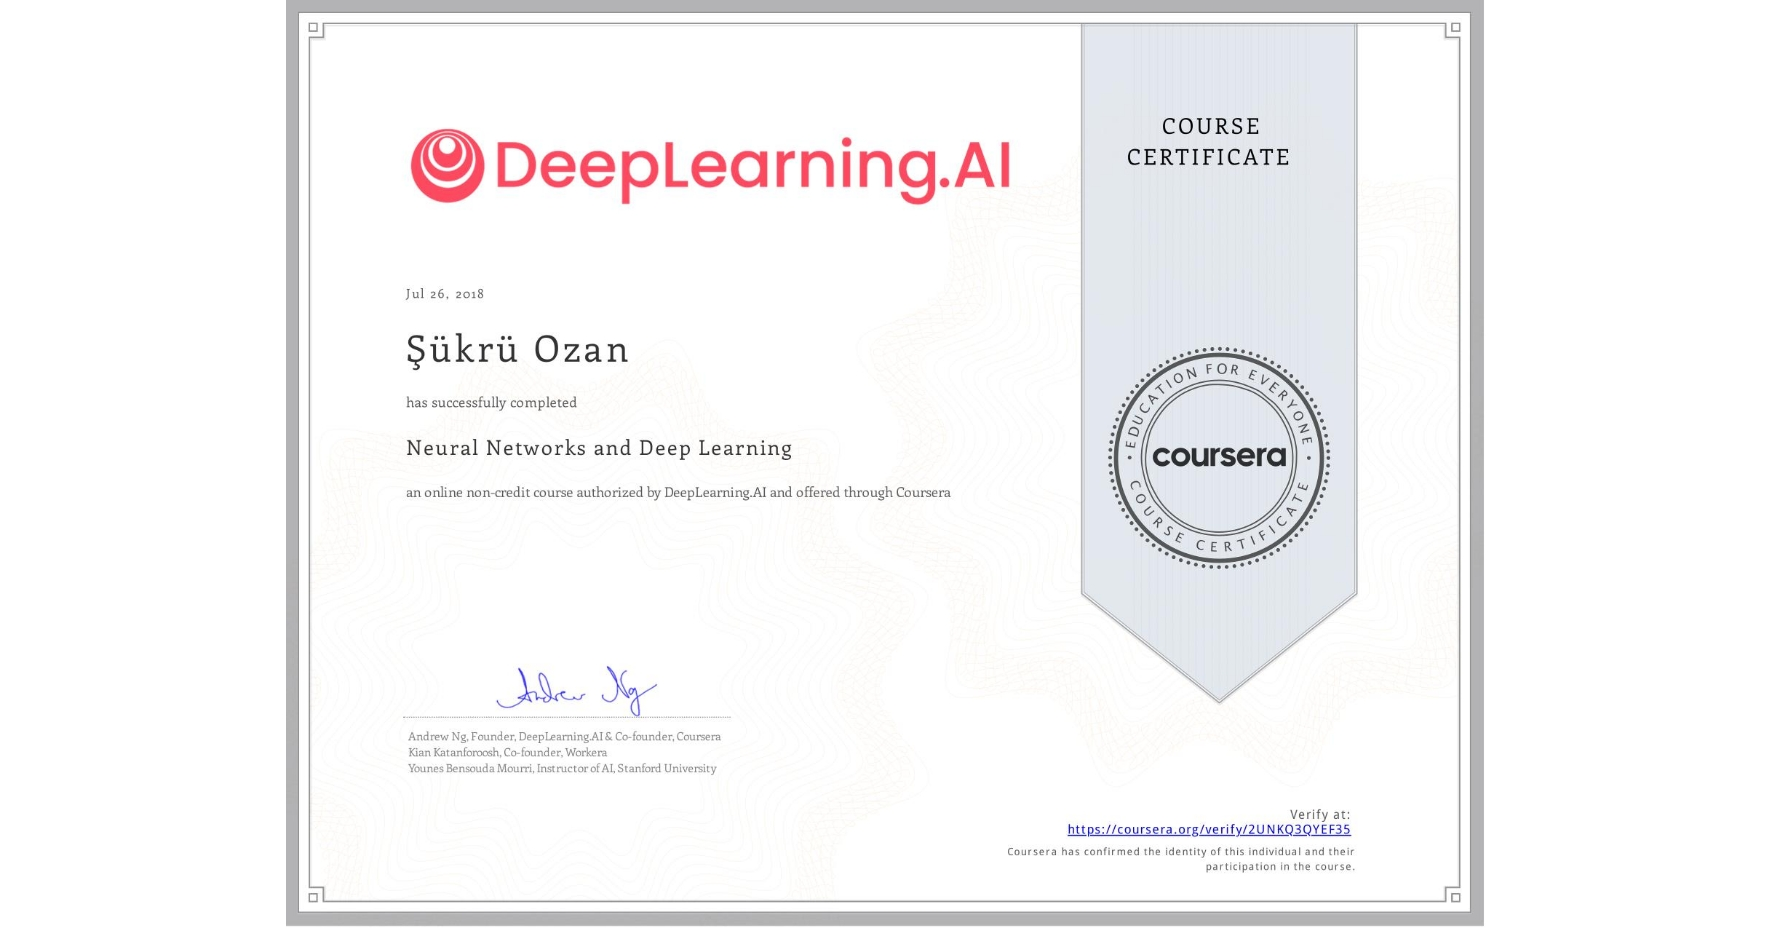 View certificate for Şükrü Ozan, Neural Networks and Deep Learning, an online non-credit course authorized by DeepLearning.AI and offered through Coursera